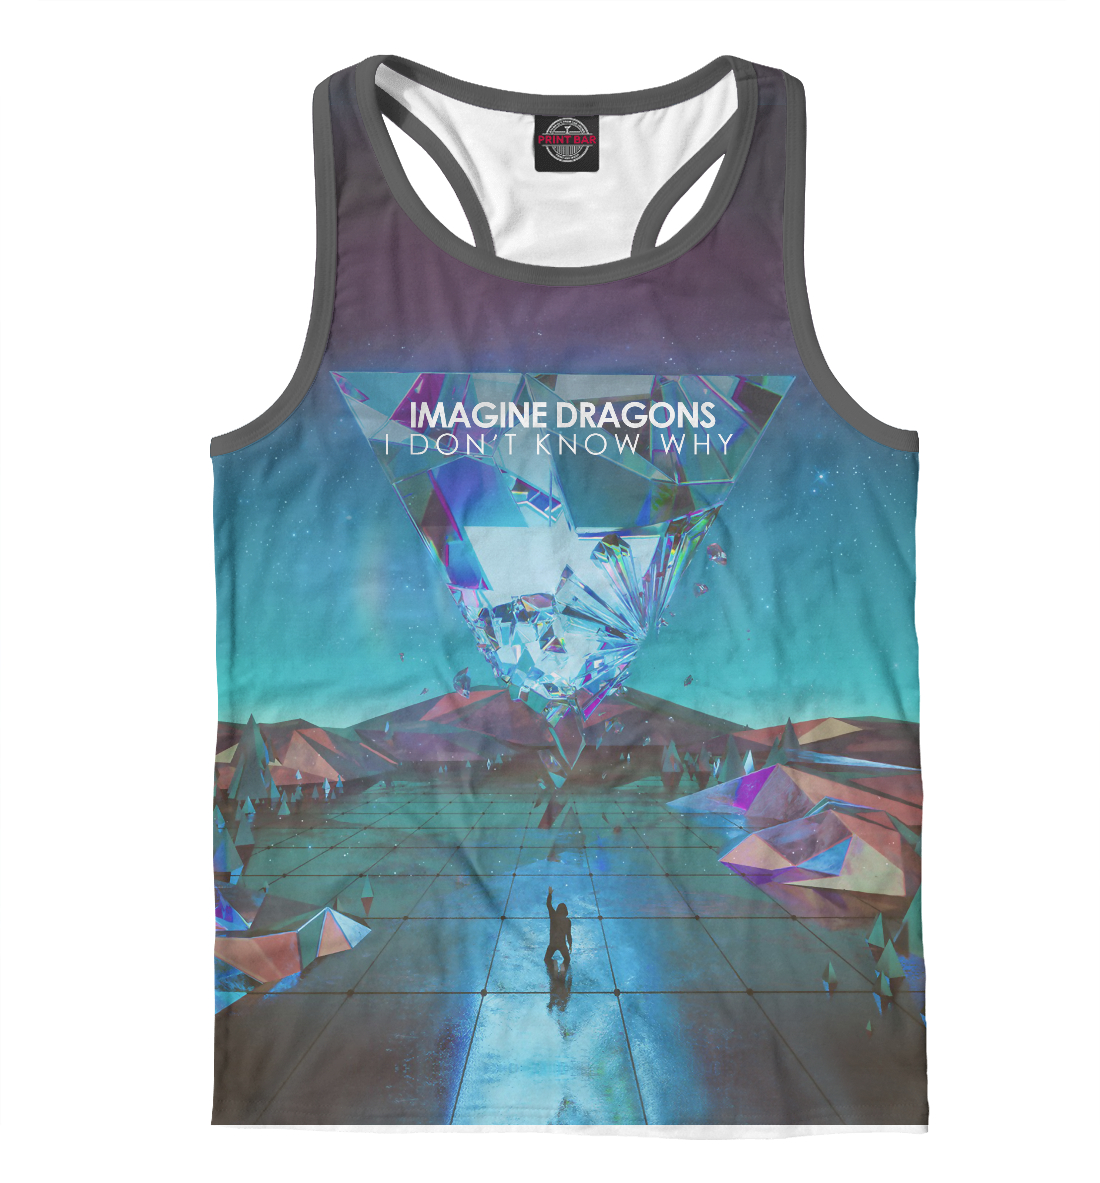 Купить Imagine Dragons / I Don't Know Why, Printbar, Майки борцовки, IMA-324934-mayb-2